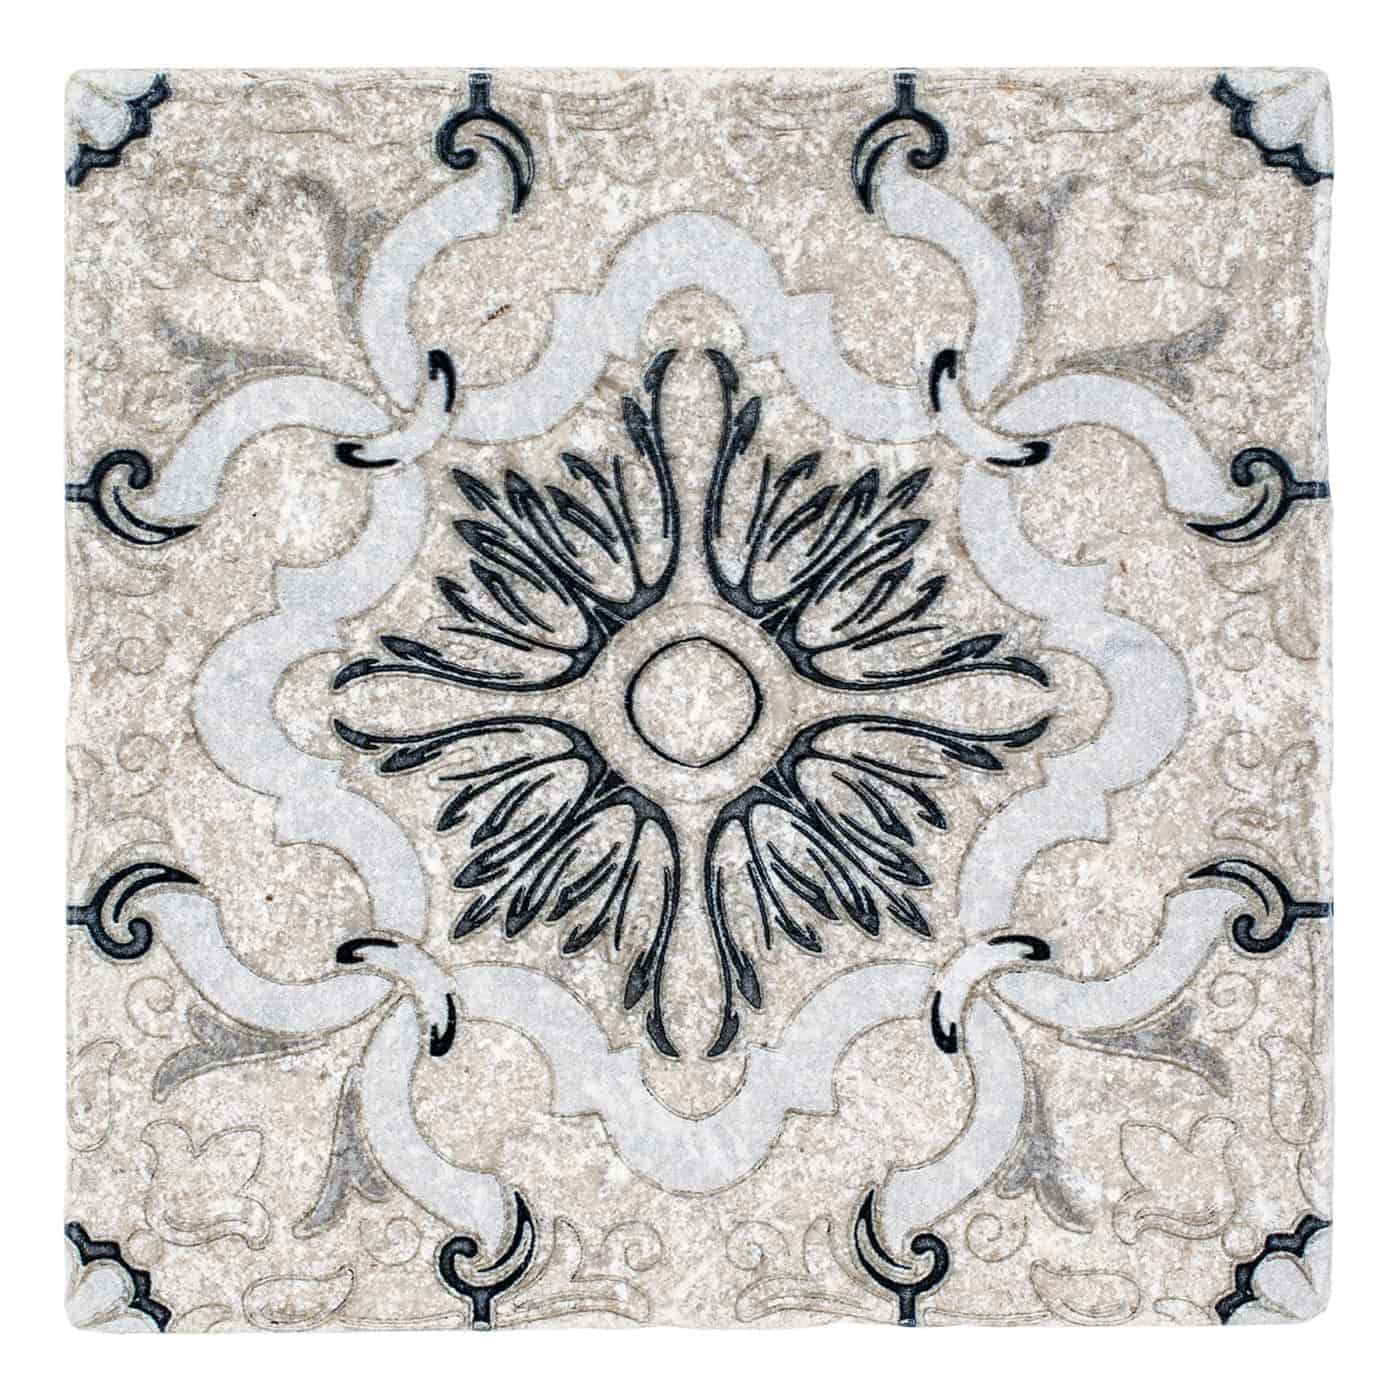 Dulcet Pattern Tile Design original Black on Perle Blanc